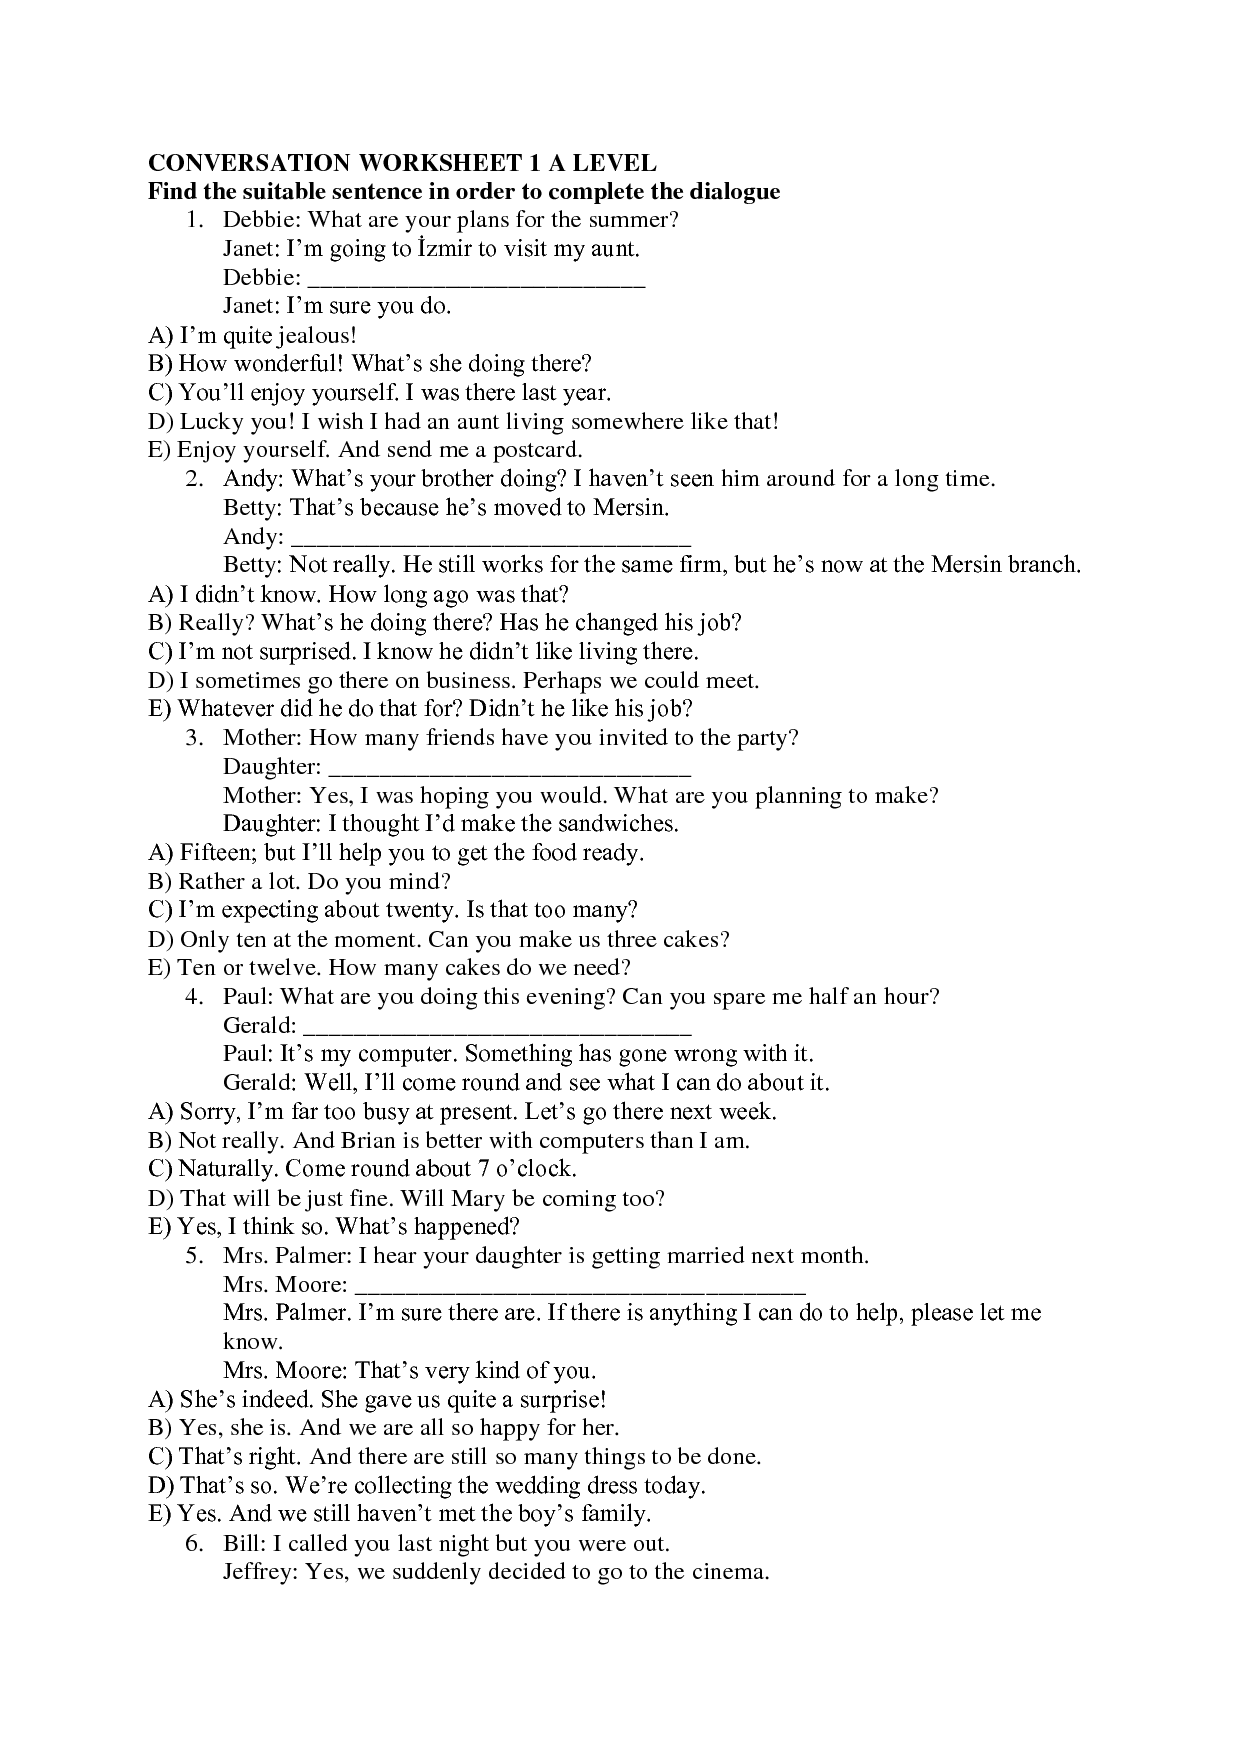 14 Best Images Of Basic Spanish Conversation Worksheets